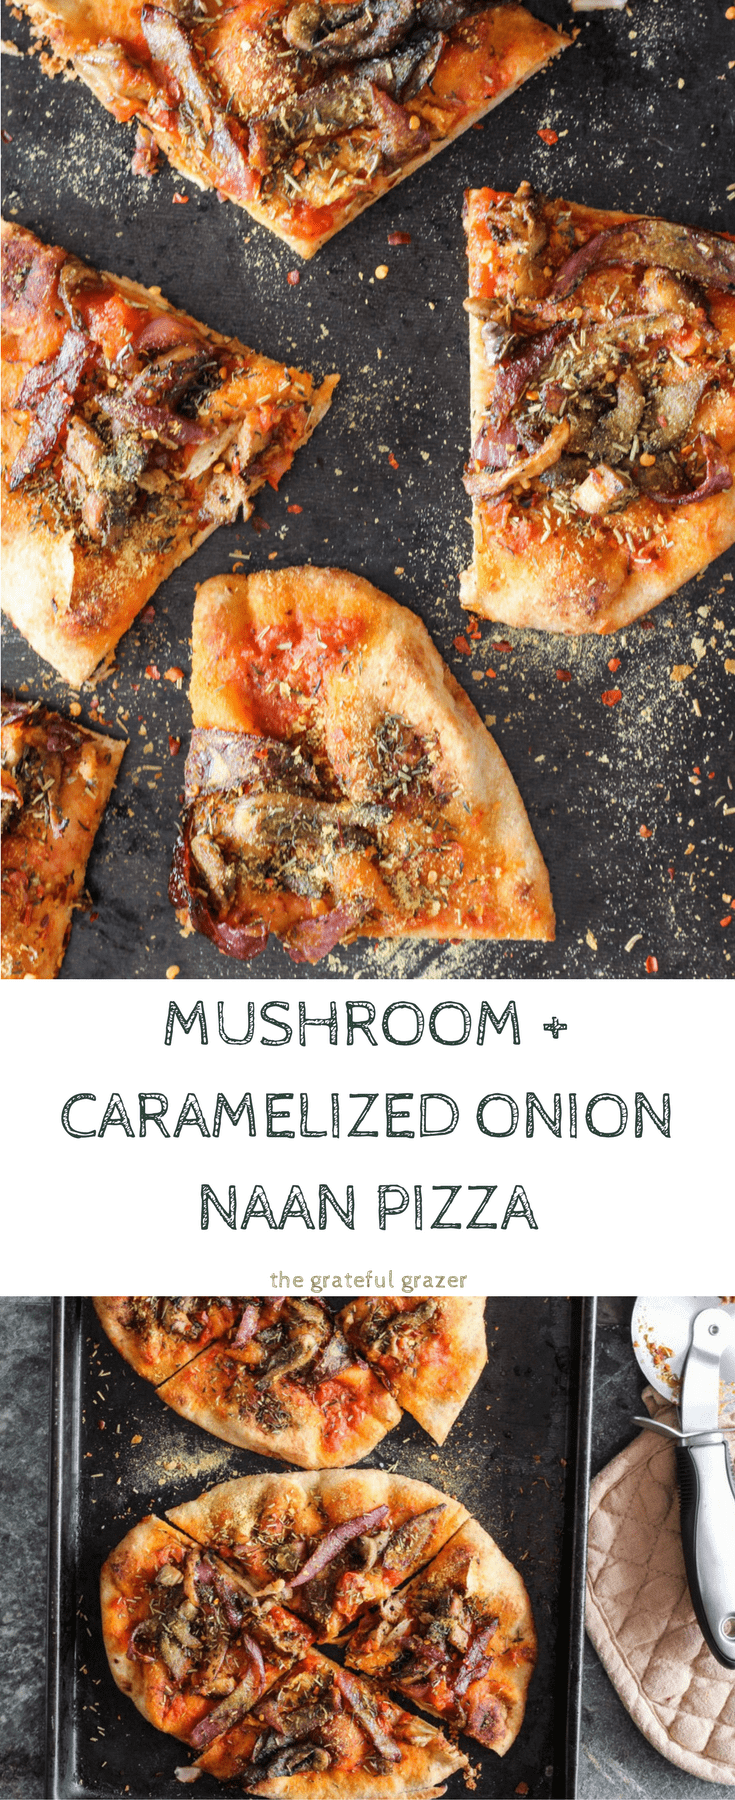 Vegan naan pizza is a healthy, fun, and delicious weeknight meal that the entire family will love. Plus, a free plant-based cookbook!